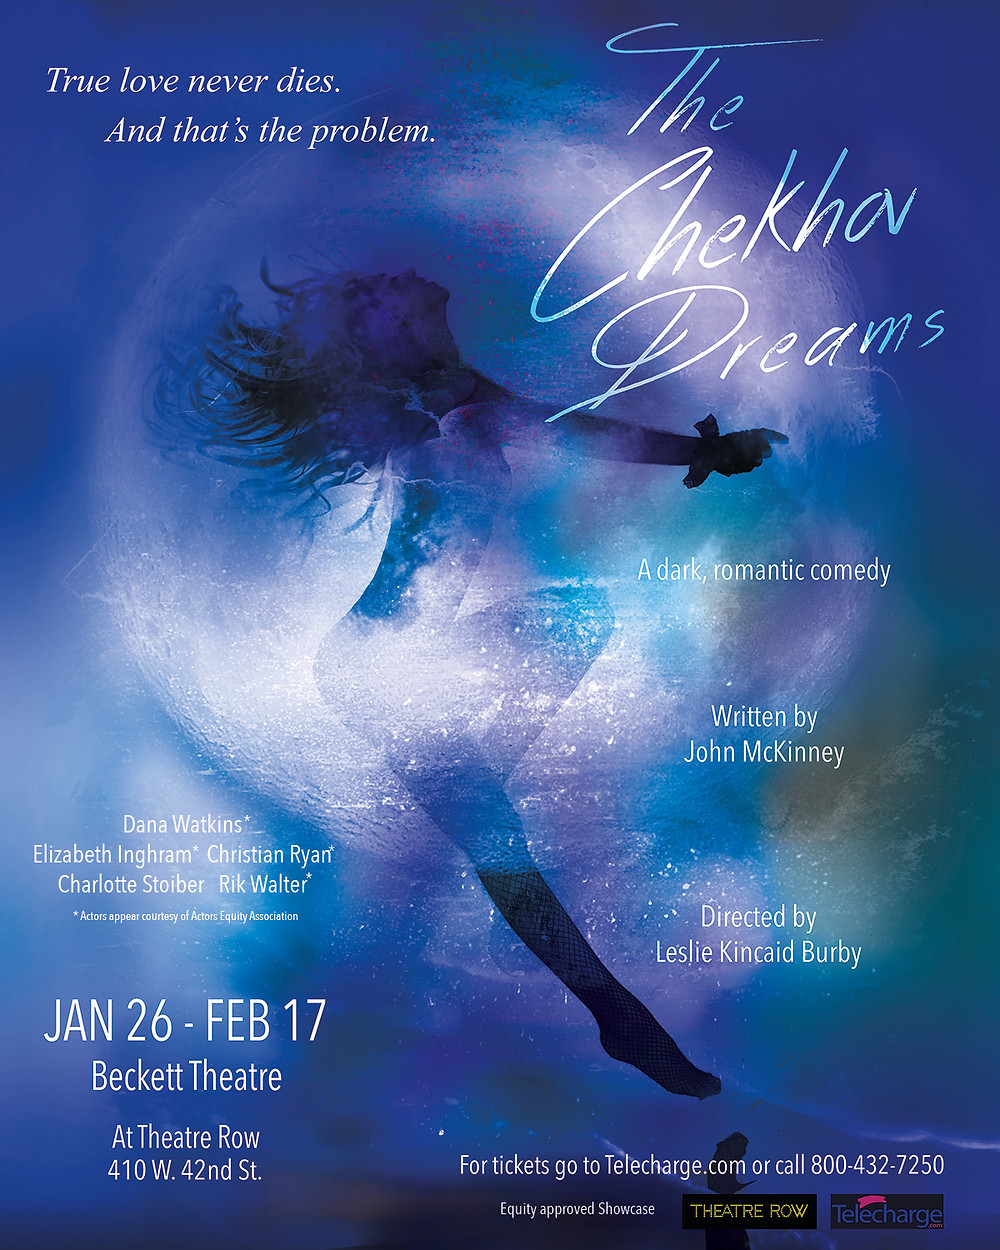 The Chekhov Dreams poster